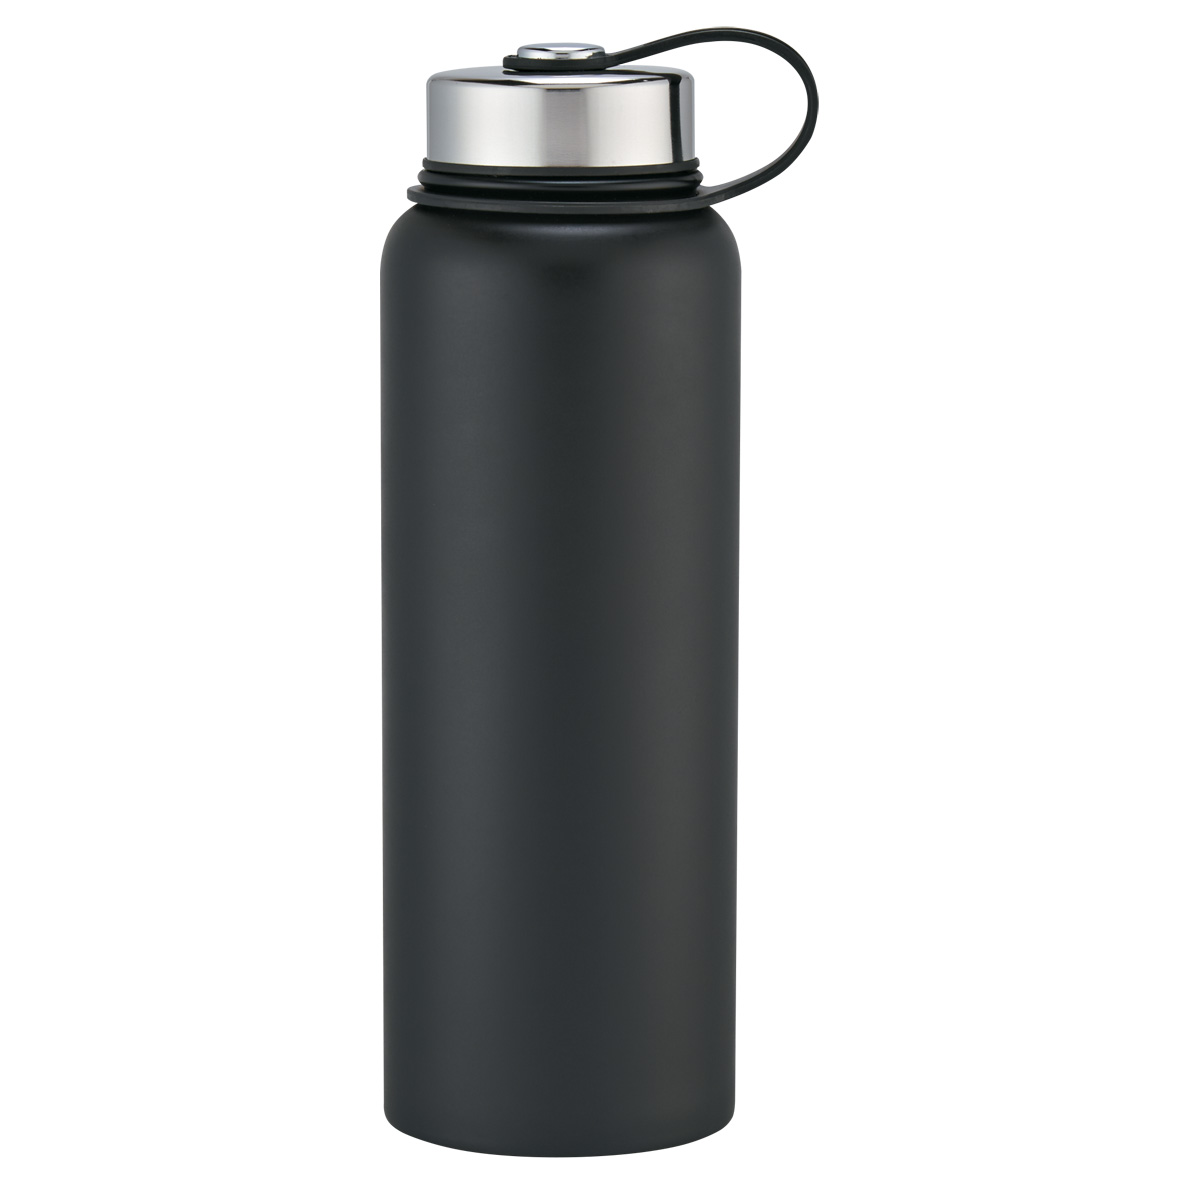 #CM 5711 - 40 Oz. Invigorate Stainless Steel Bottle